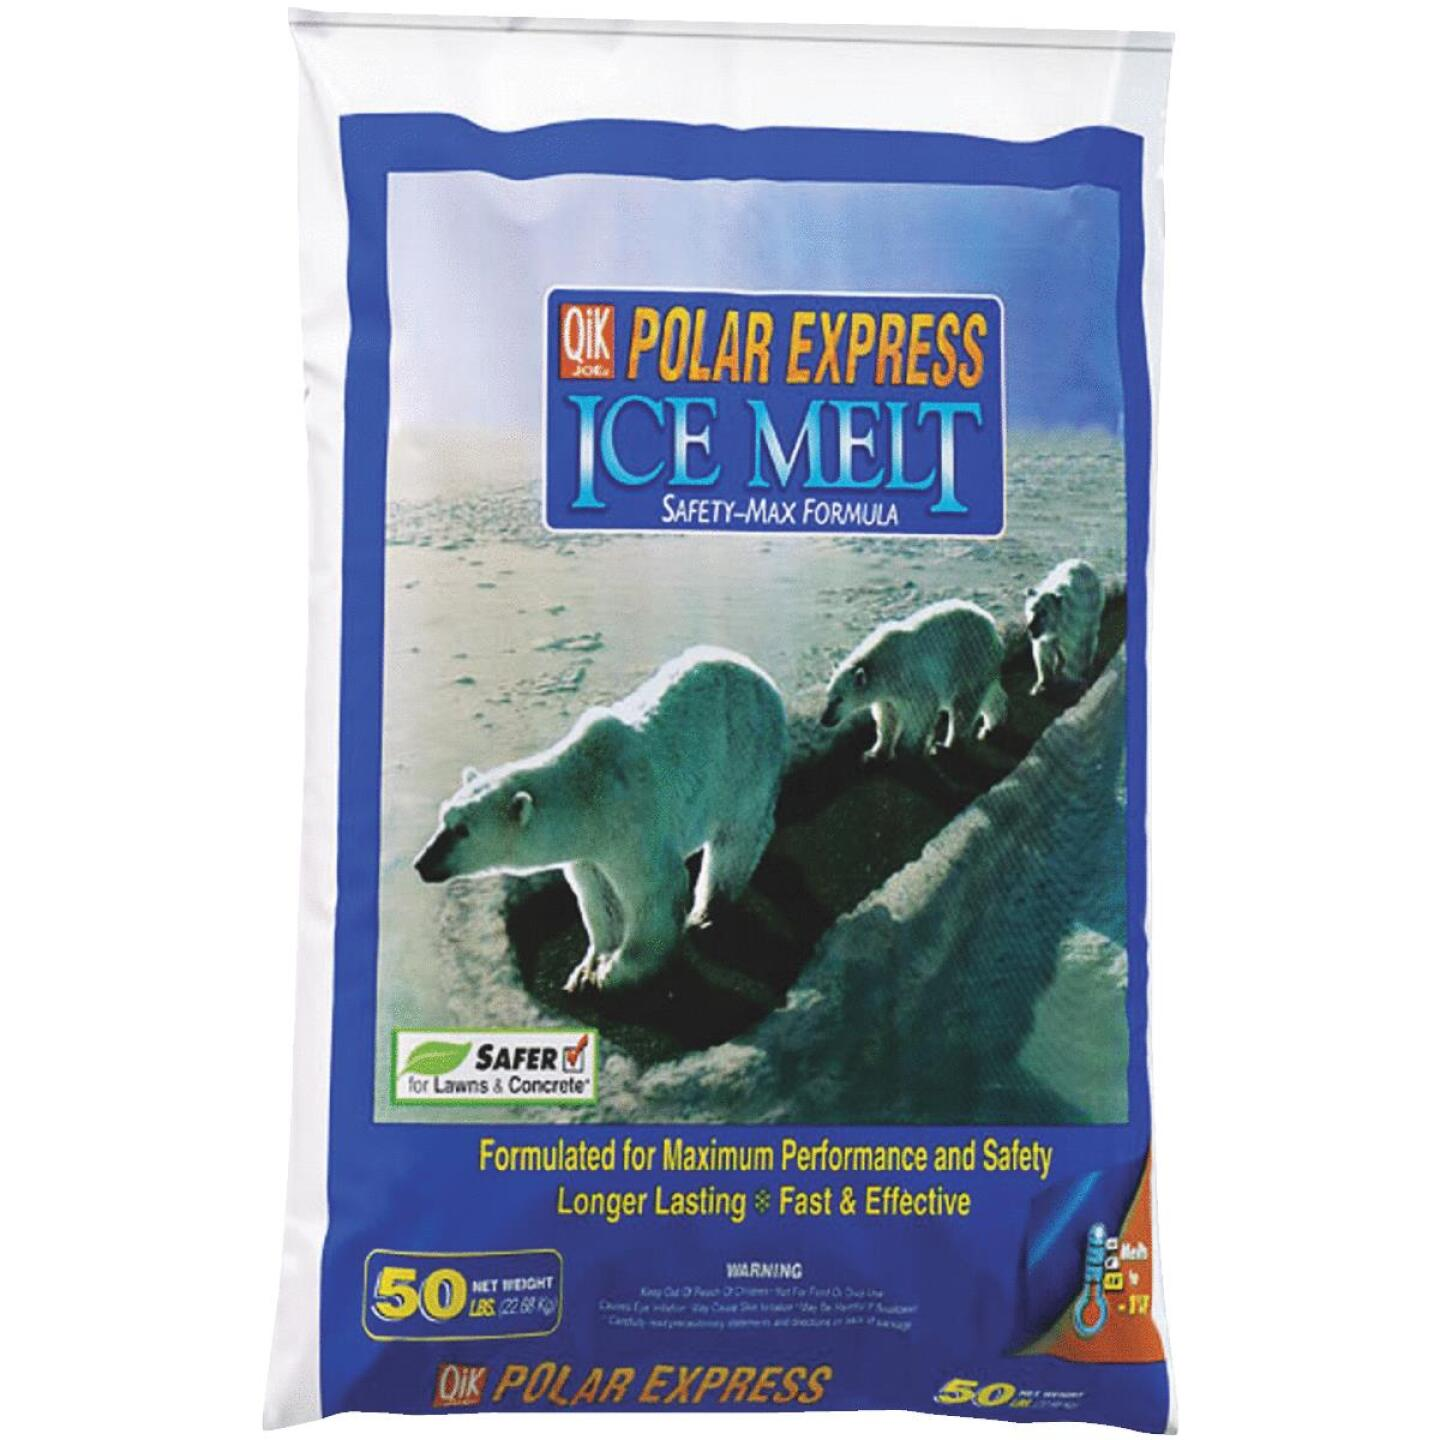 Qik Joe Polar Express 50 Lb. Ice Melt Pellets Image 1